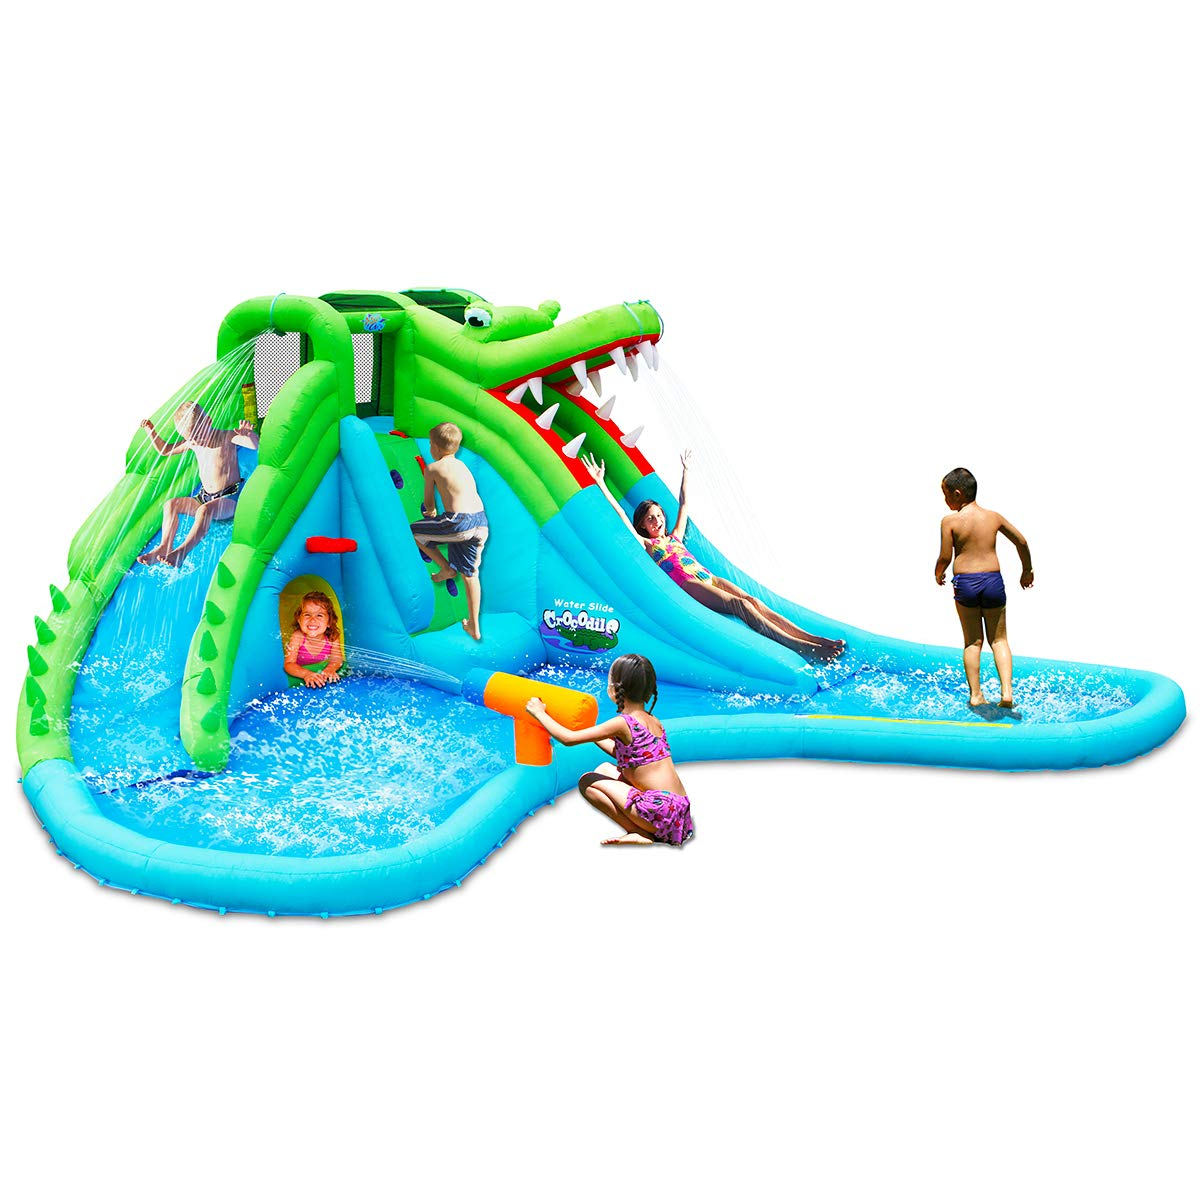 Costzon Inflatable Pool Bouncer, Crocodile Themed Bounce House w/Two Water Slides, Climbing Wall, Basketball Rim, Tunnel, Kids Water Park, Including Carry Bag, Hose, Repair Kit, 780W Air Blower